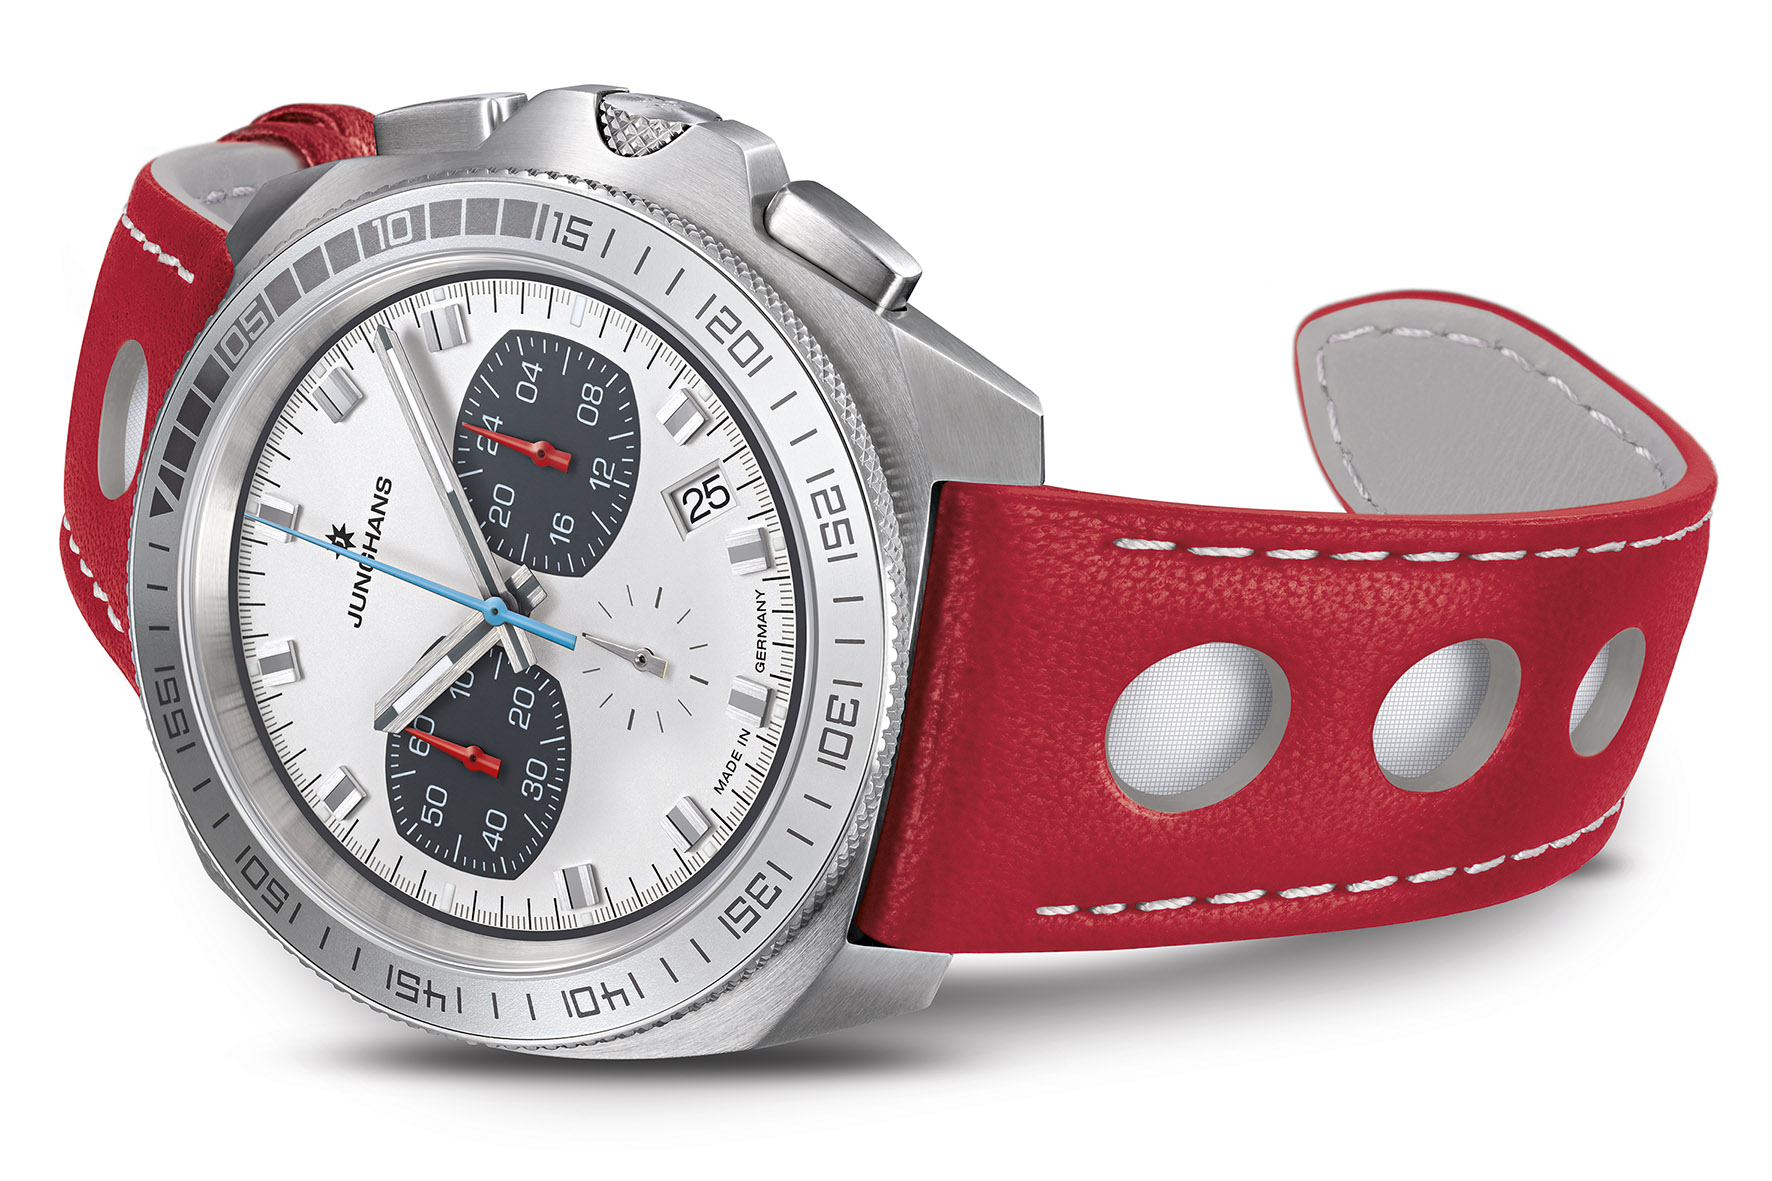 JUNGHANS IS THE OFFICIAL TIMING PARTNER FOR THE WORLD NORDIC SKI AND LUGE WORLD CHAMPIONSHIP 2019